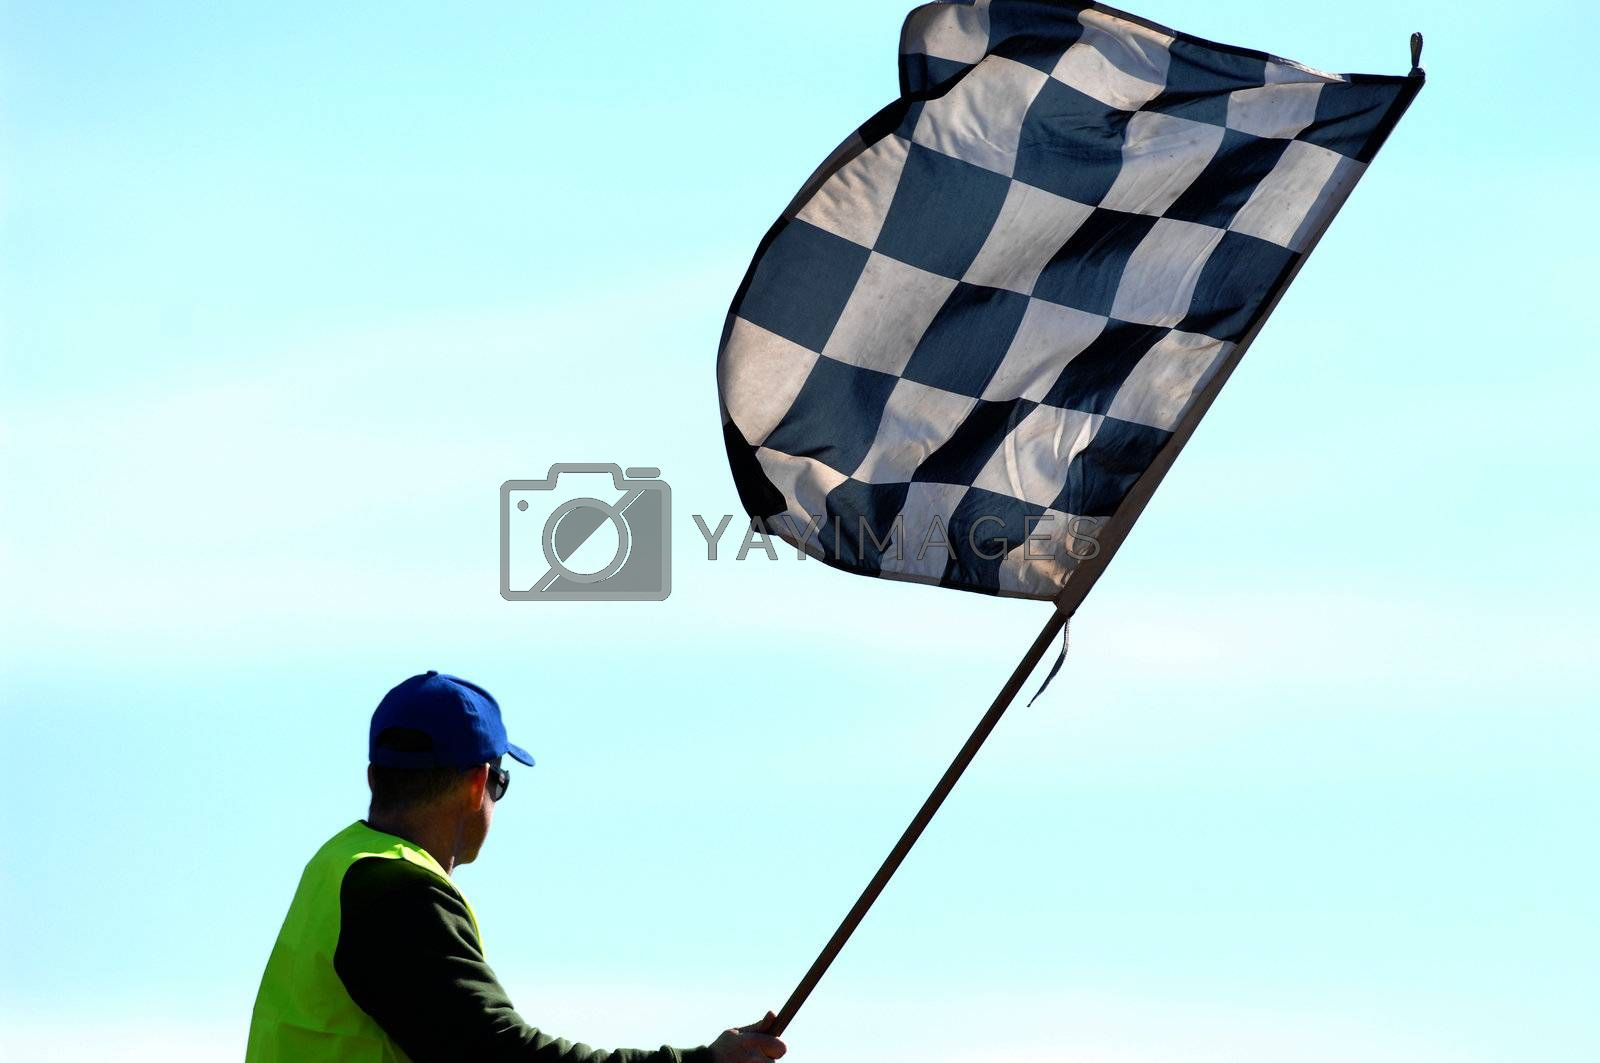 A checkered flag being waved at the completion of a race.